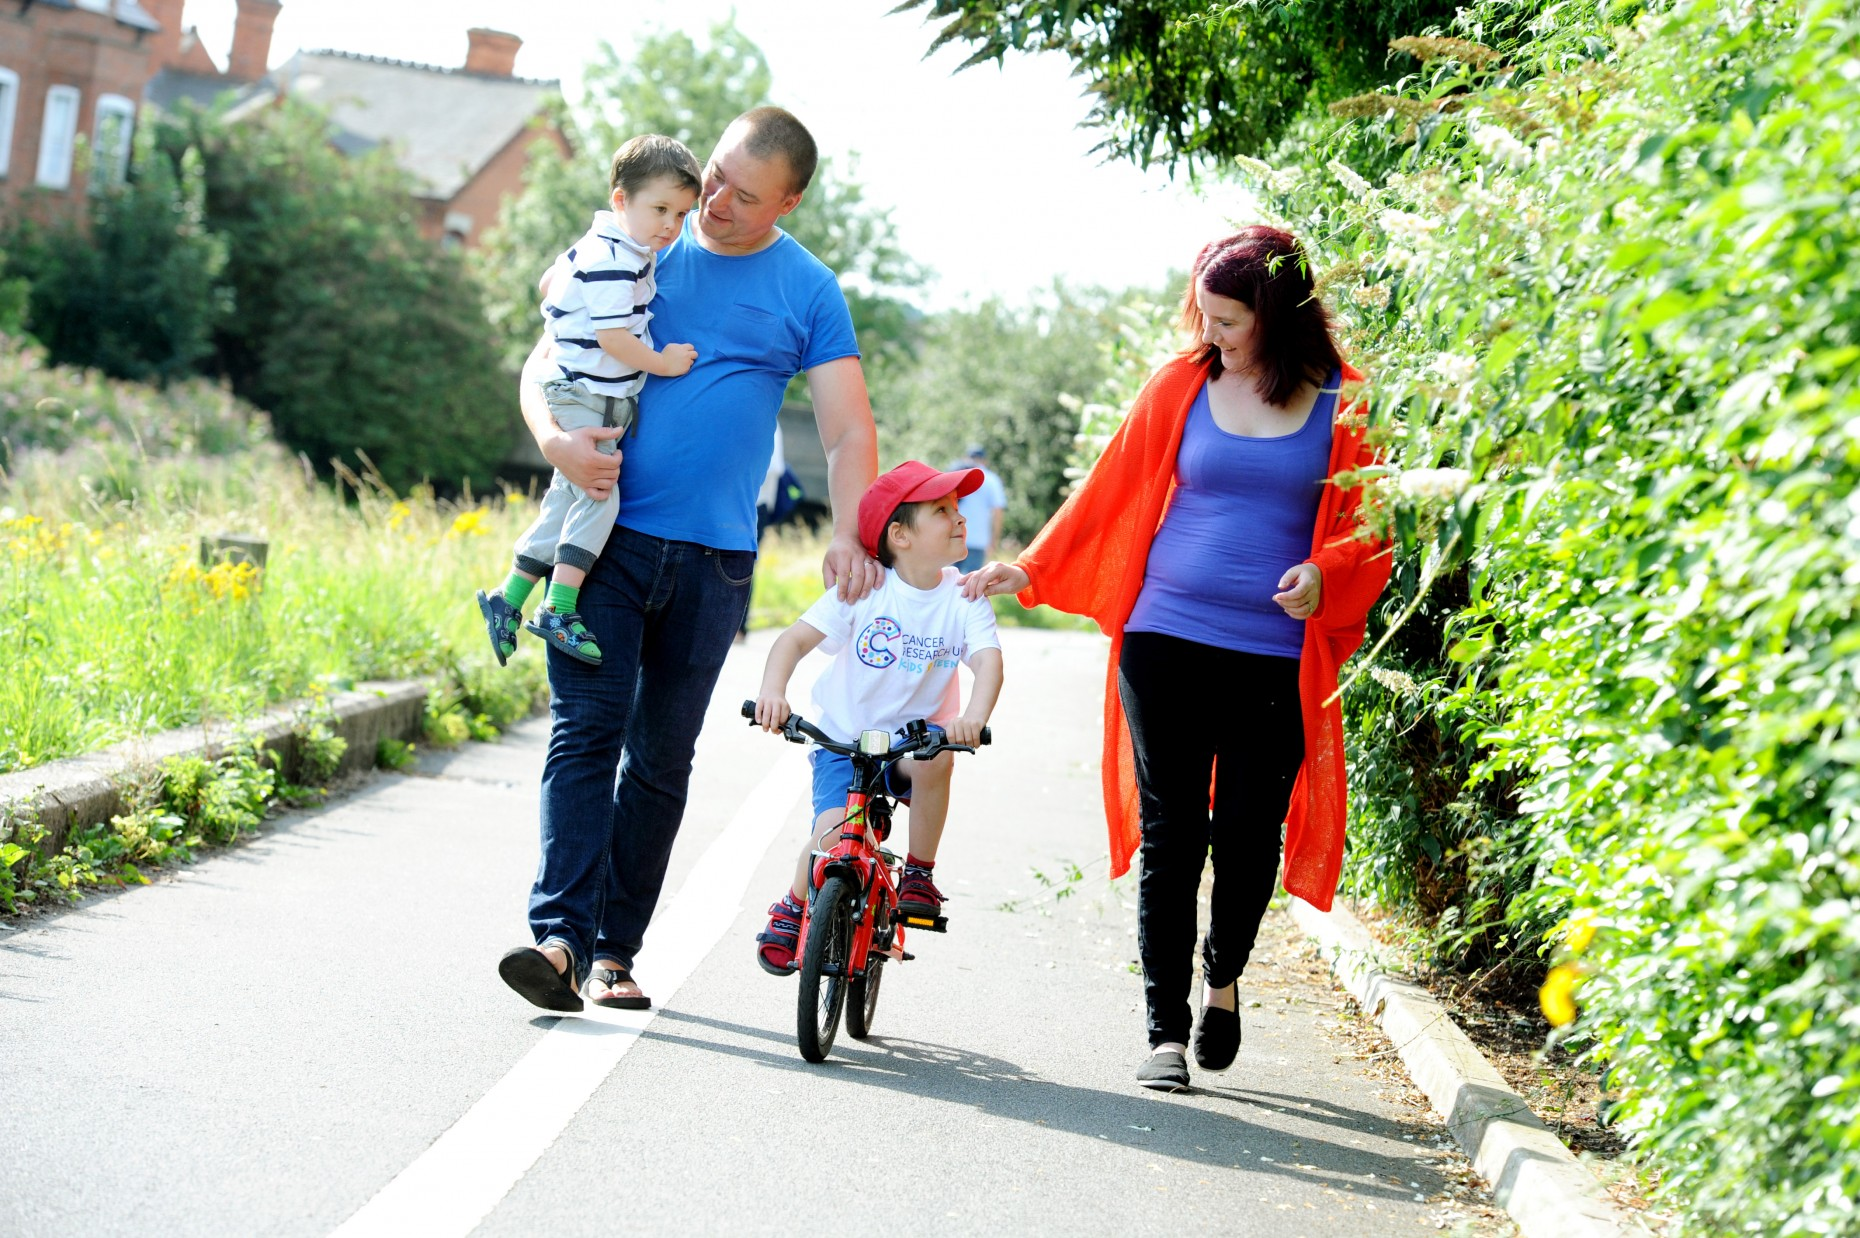 Cancer survivor Liam Kirk, 6, from Lincoln, wears a Cancer Research UK Kid & Teens t-shirt to mark the launch of the new campaign to beat childhood cancers sooner.  Pictured with mum Janet, dad Phil and little brother Jack.